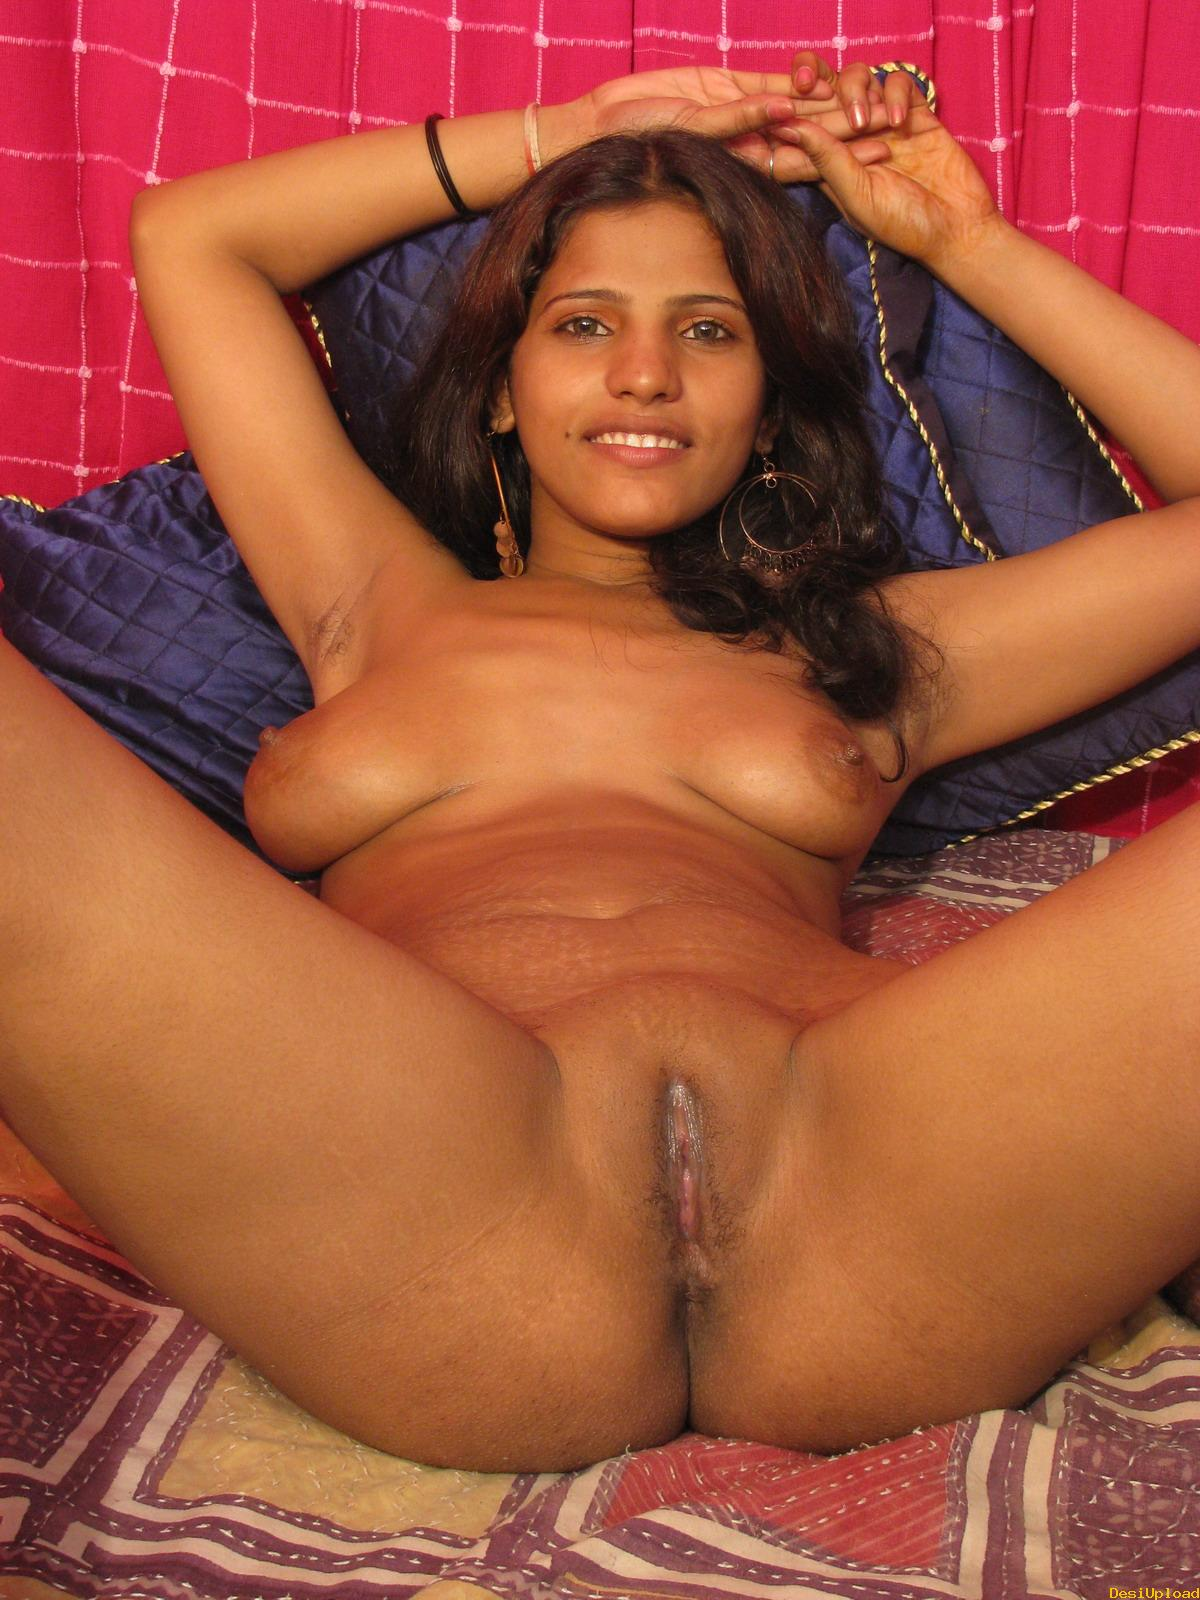 Indian sexpronhd nsfw photo